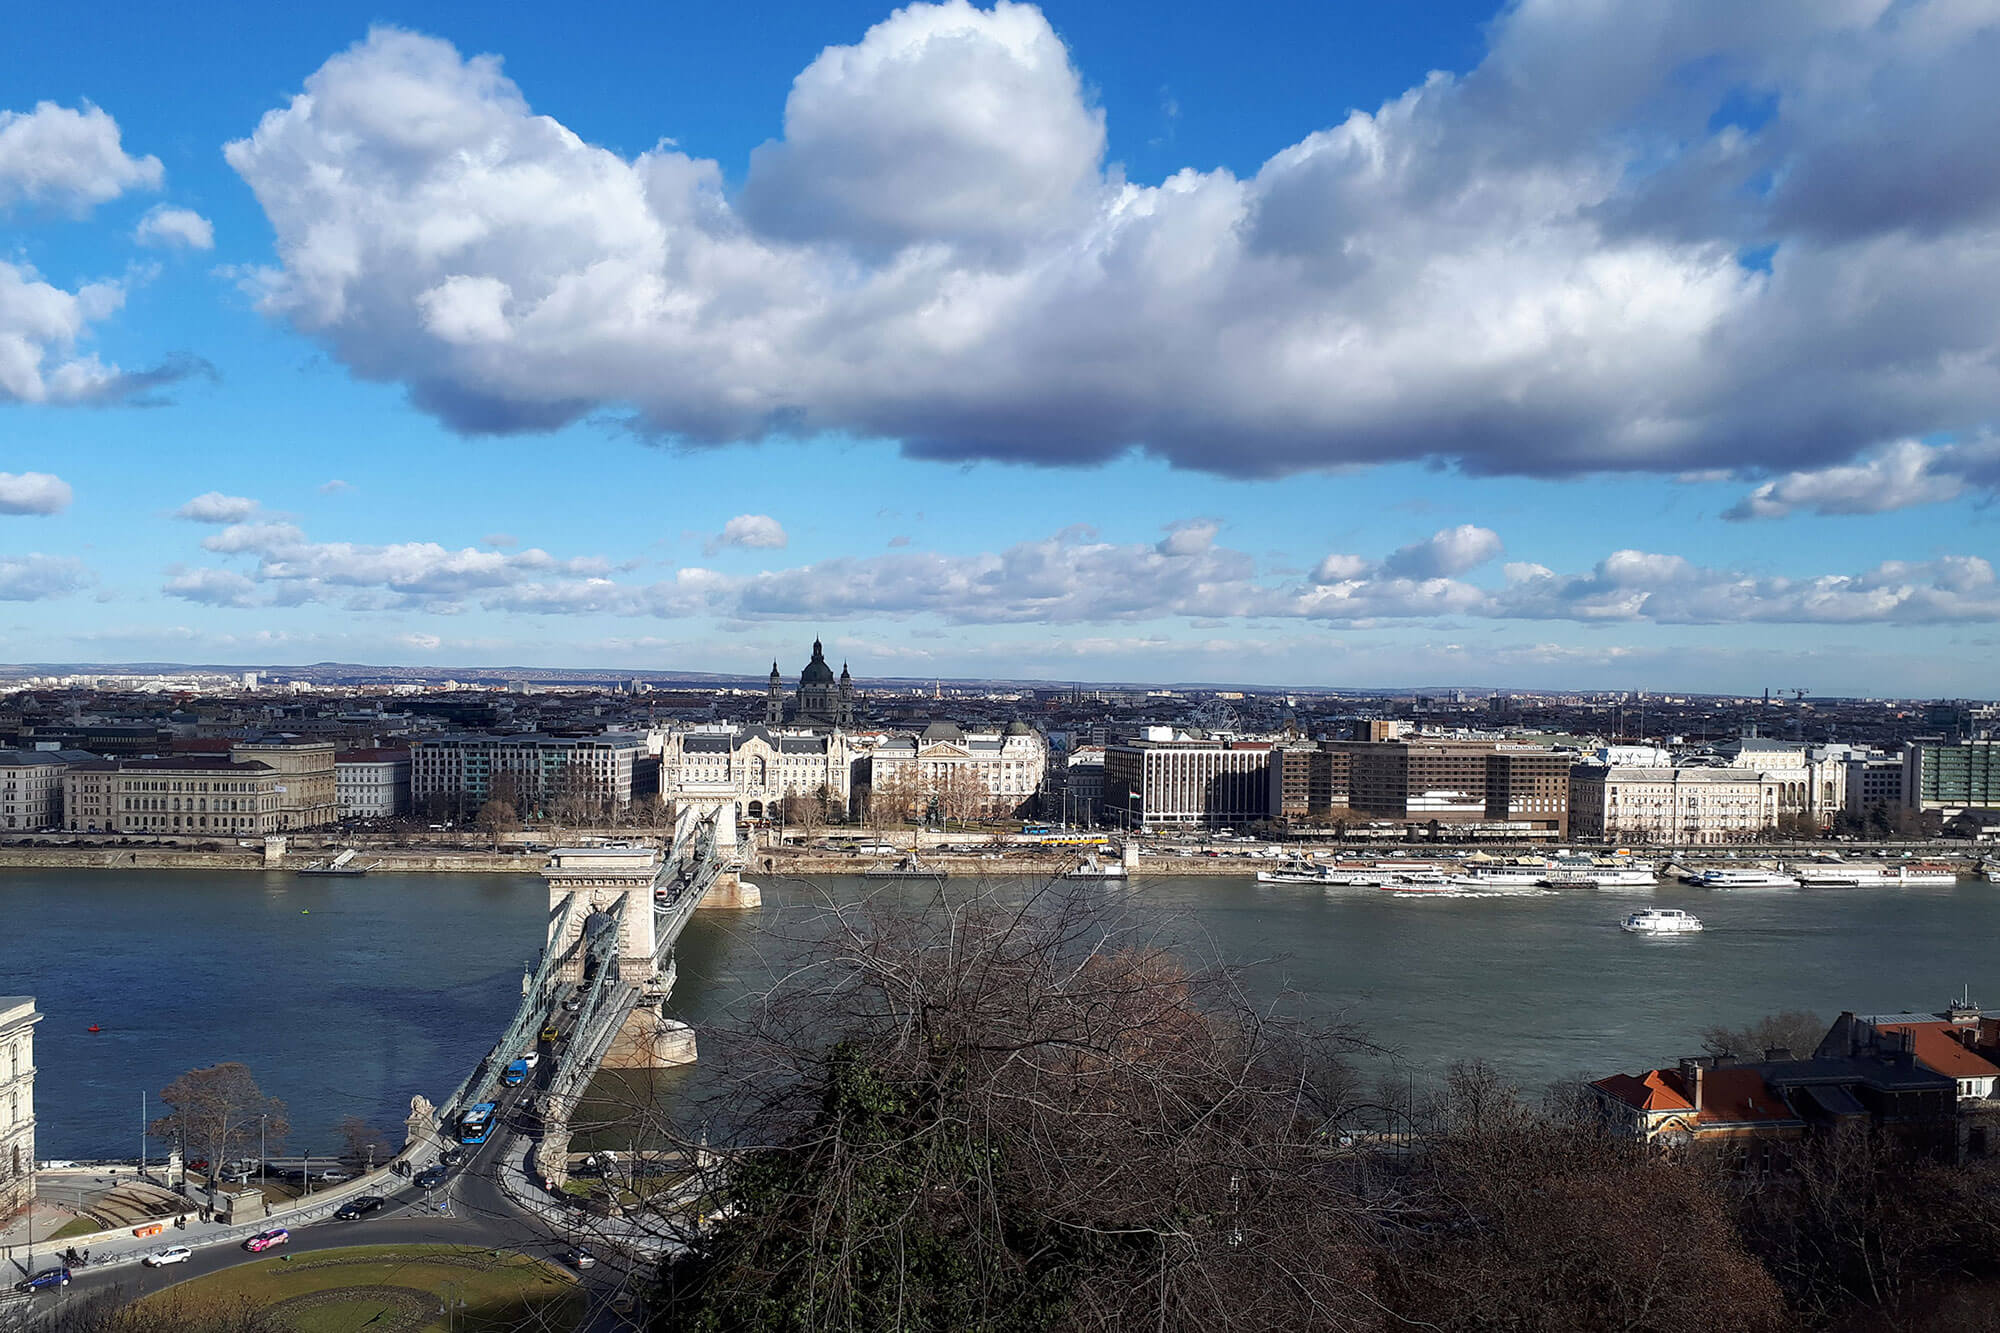 Panoramic view of Budapest looking over the river